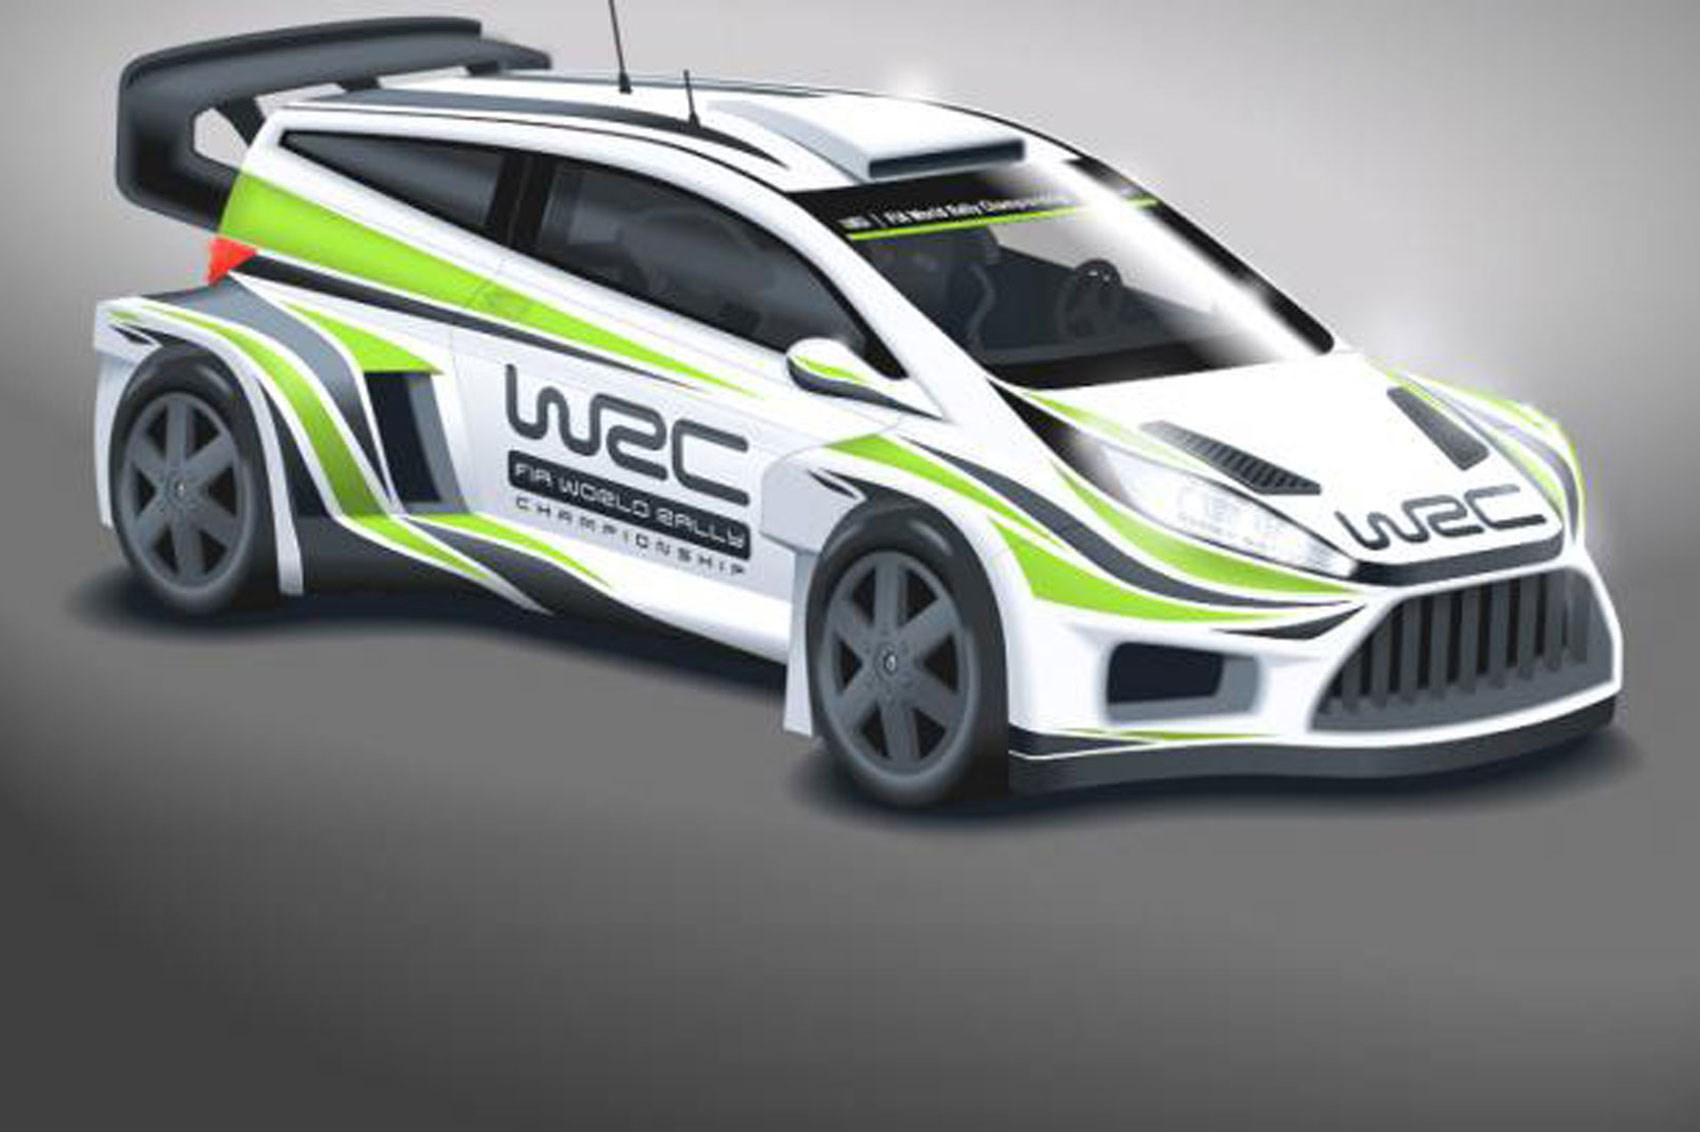 Ultrablogus  Ravishing Wild New Look For Wrc Cars In  By Car Magazine With Entrancing Wrc Cars Will Get Wider Bodies Bigger Wings And More Power For  With Beauteous  Lincoln Ls Interior Also  Mazda Millenia Interior In Addition Bmw Interior Fabric And Best Car Interior Cleaners As Well As  Corvette Interior Additionally  Dodge Ram  Interior From Carmagazinecouk With Ultrablogus  Entrancing Wild New Look For Wrc Cars In  By Car Magazine With Beauteous Wrc Cars Will Get Wider Bodies Bigger Wings And More Power For  And Ravishing  Lincoln Ls Interior Also  Mazda Millenia Interior In Addition Bmw Interior Fabric From Carmagazinecouk